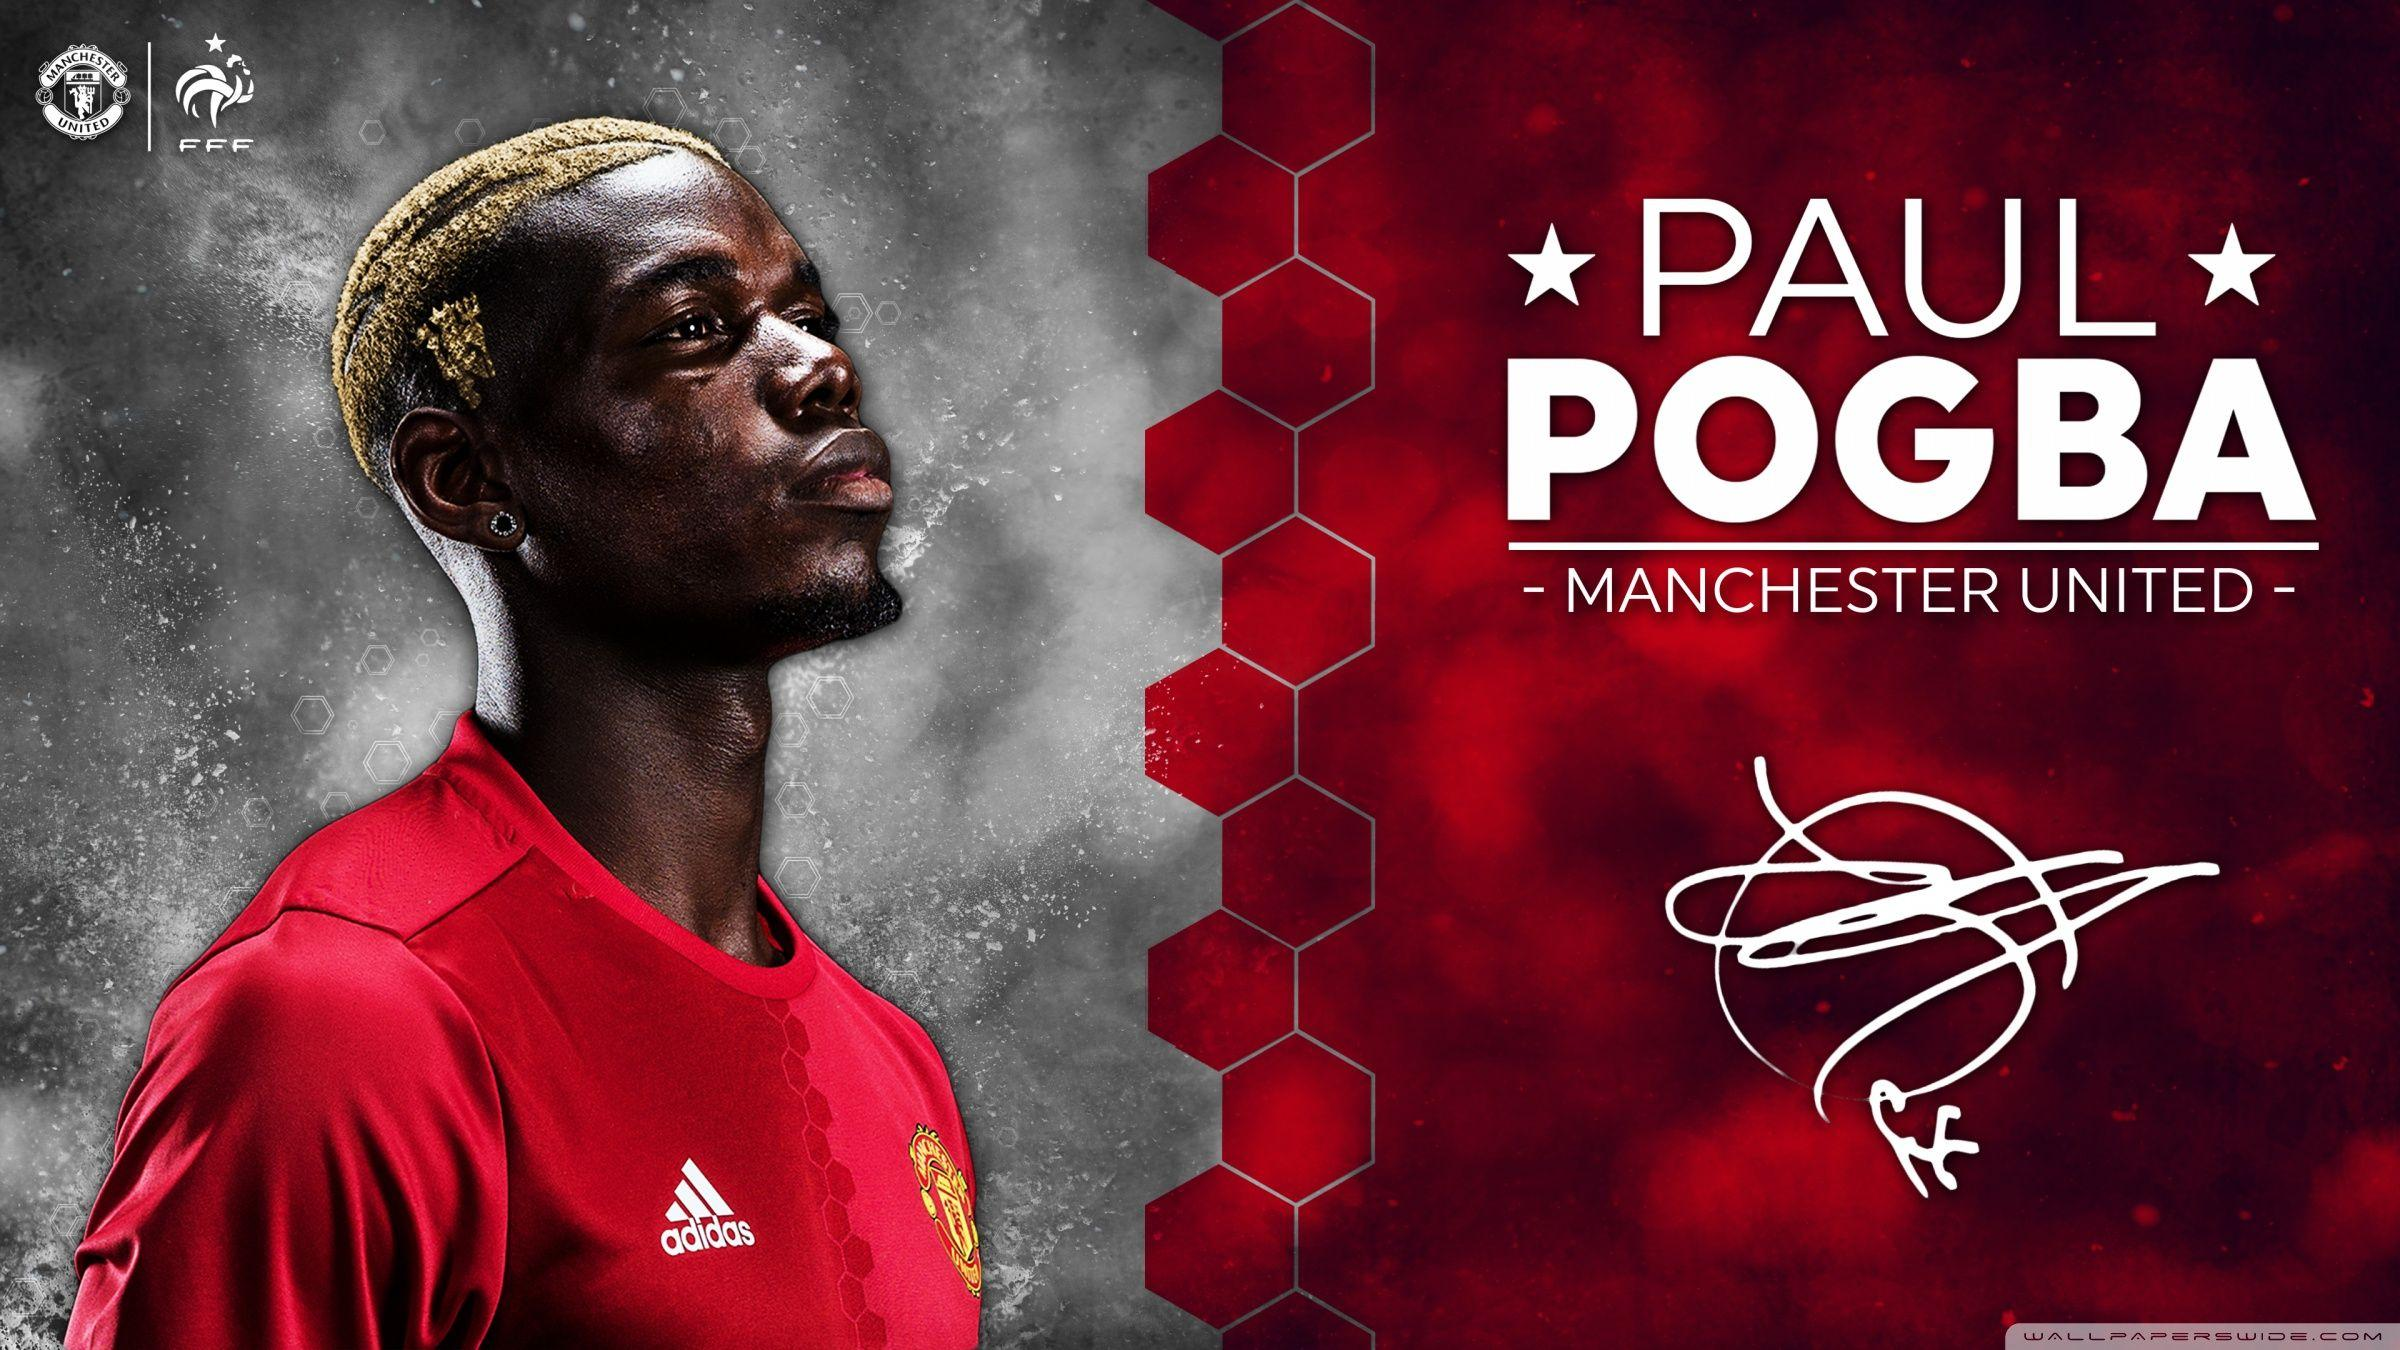 Paul Pogba Manchester United 2016 17 HD desktop wallpaper : High ...